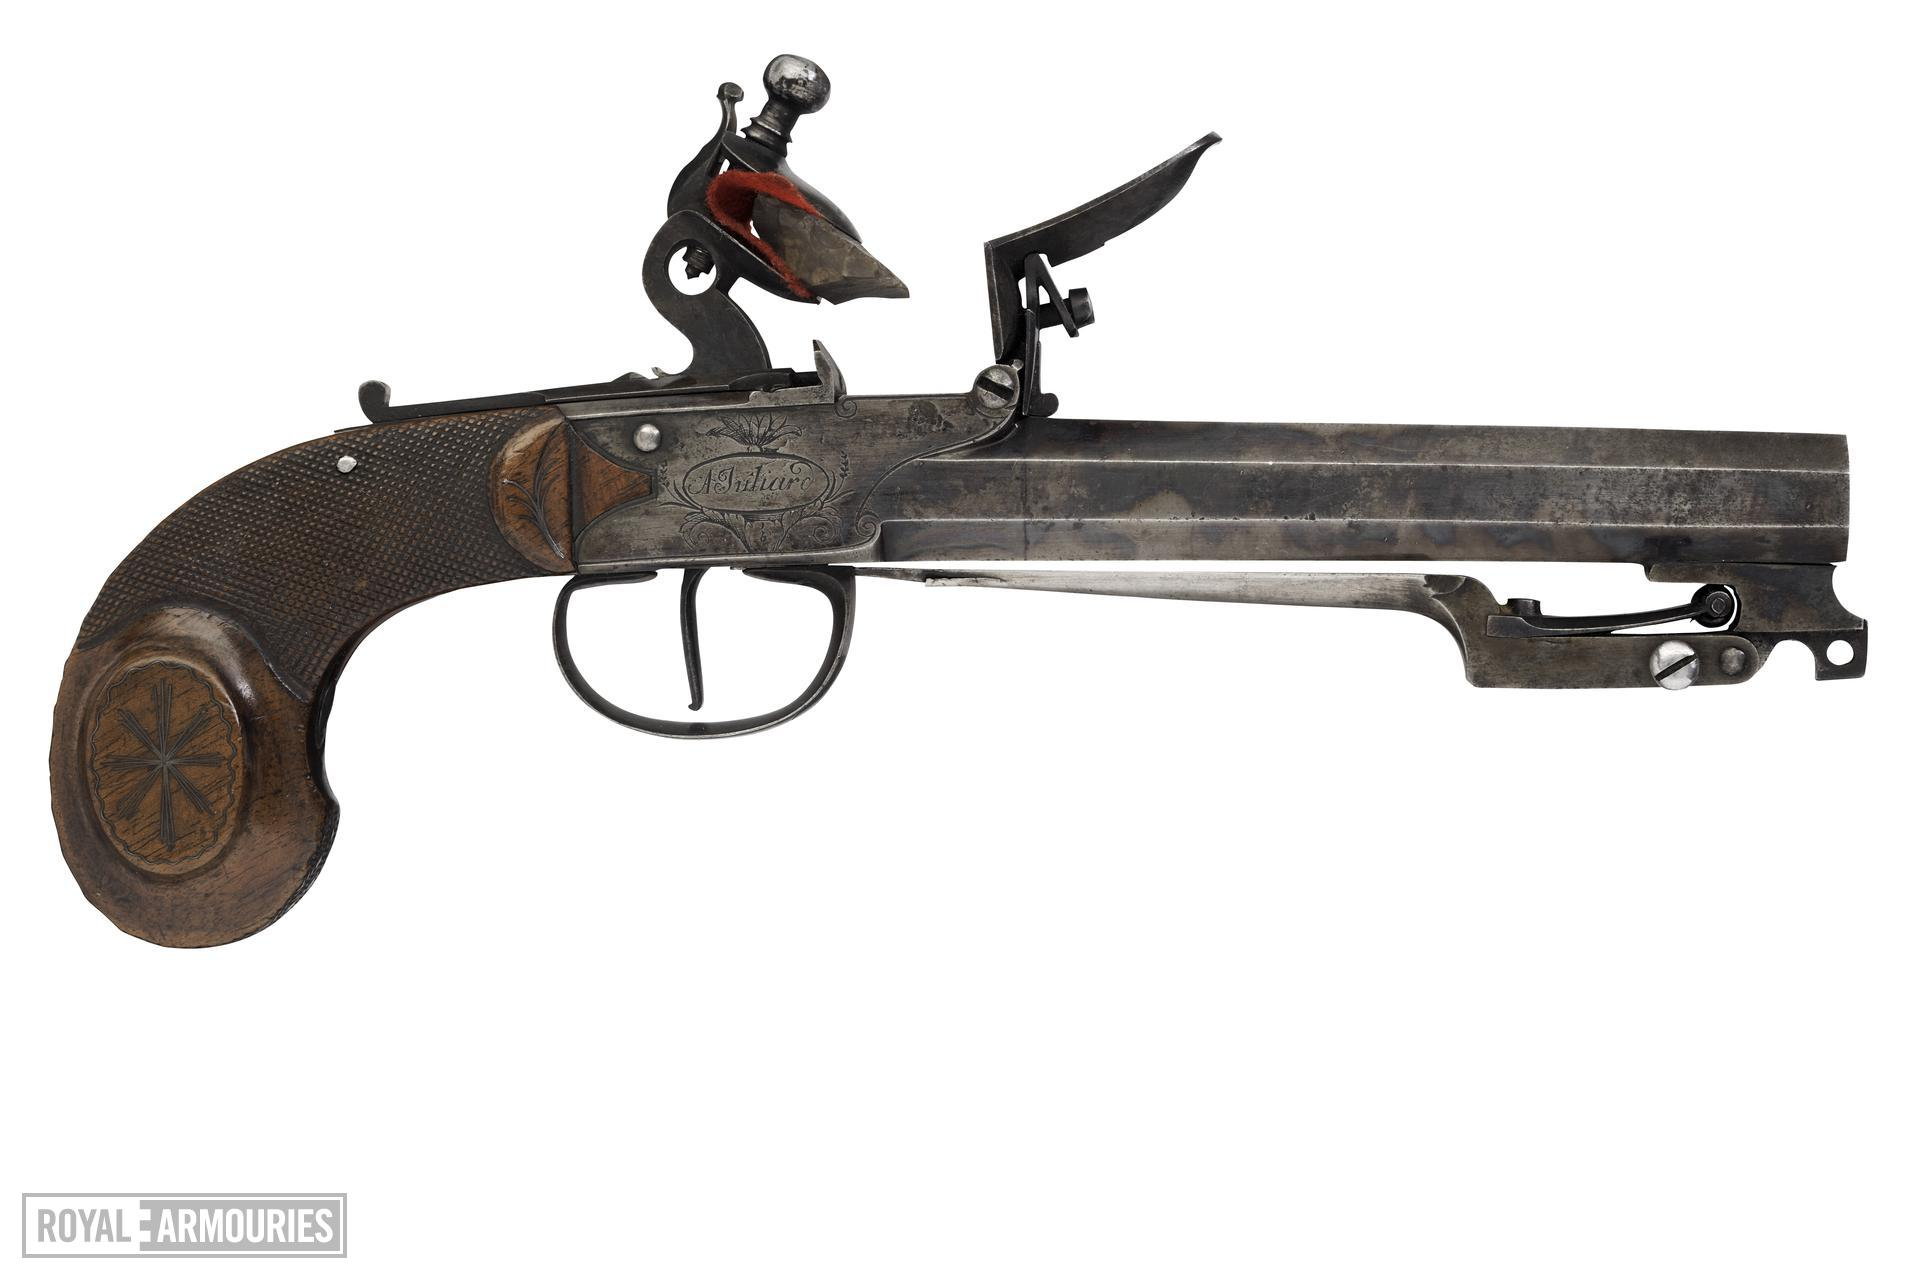 Flintlock pistol By A. Juliard One of a pair see XII.1110